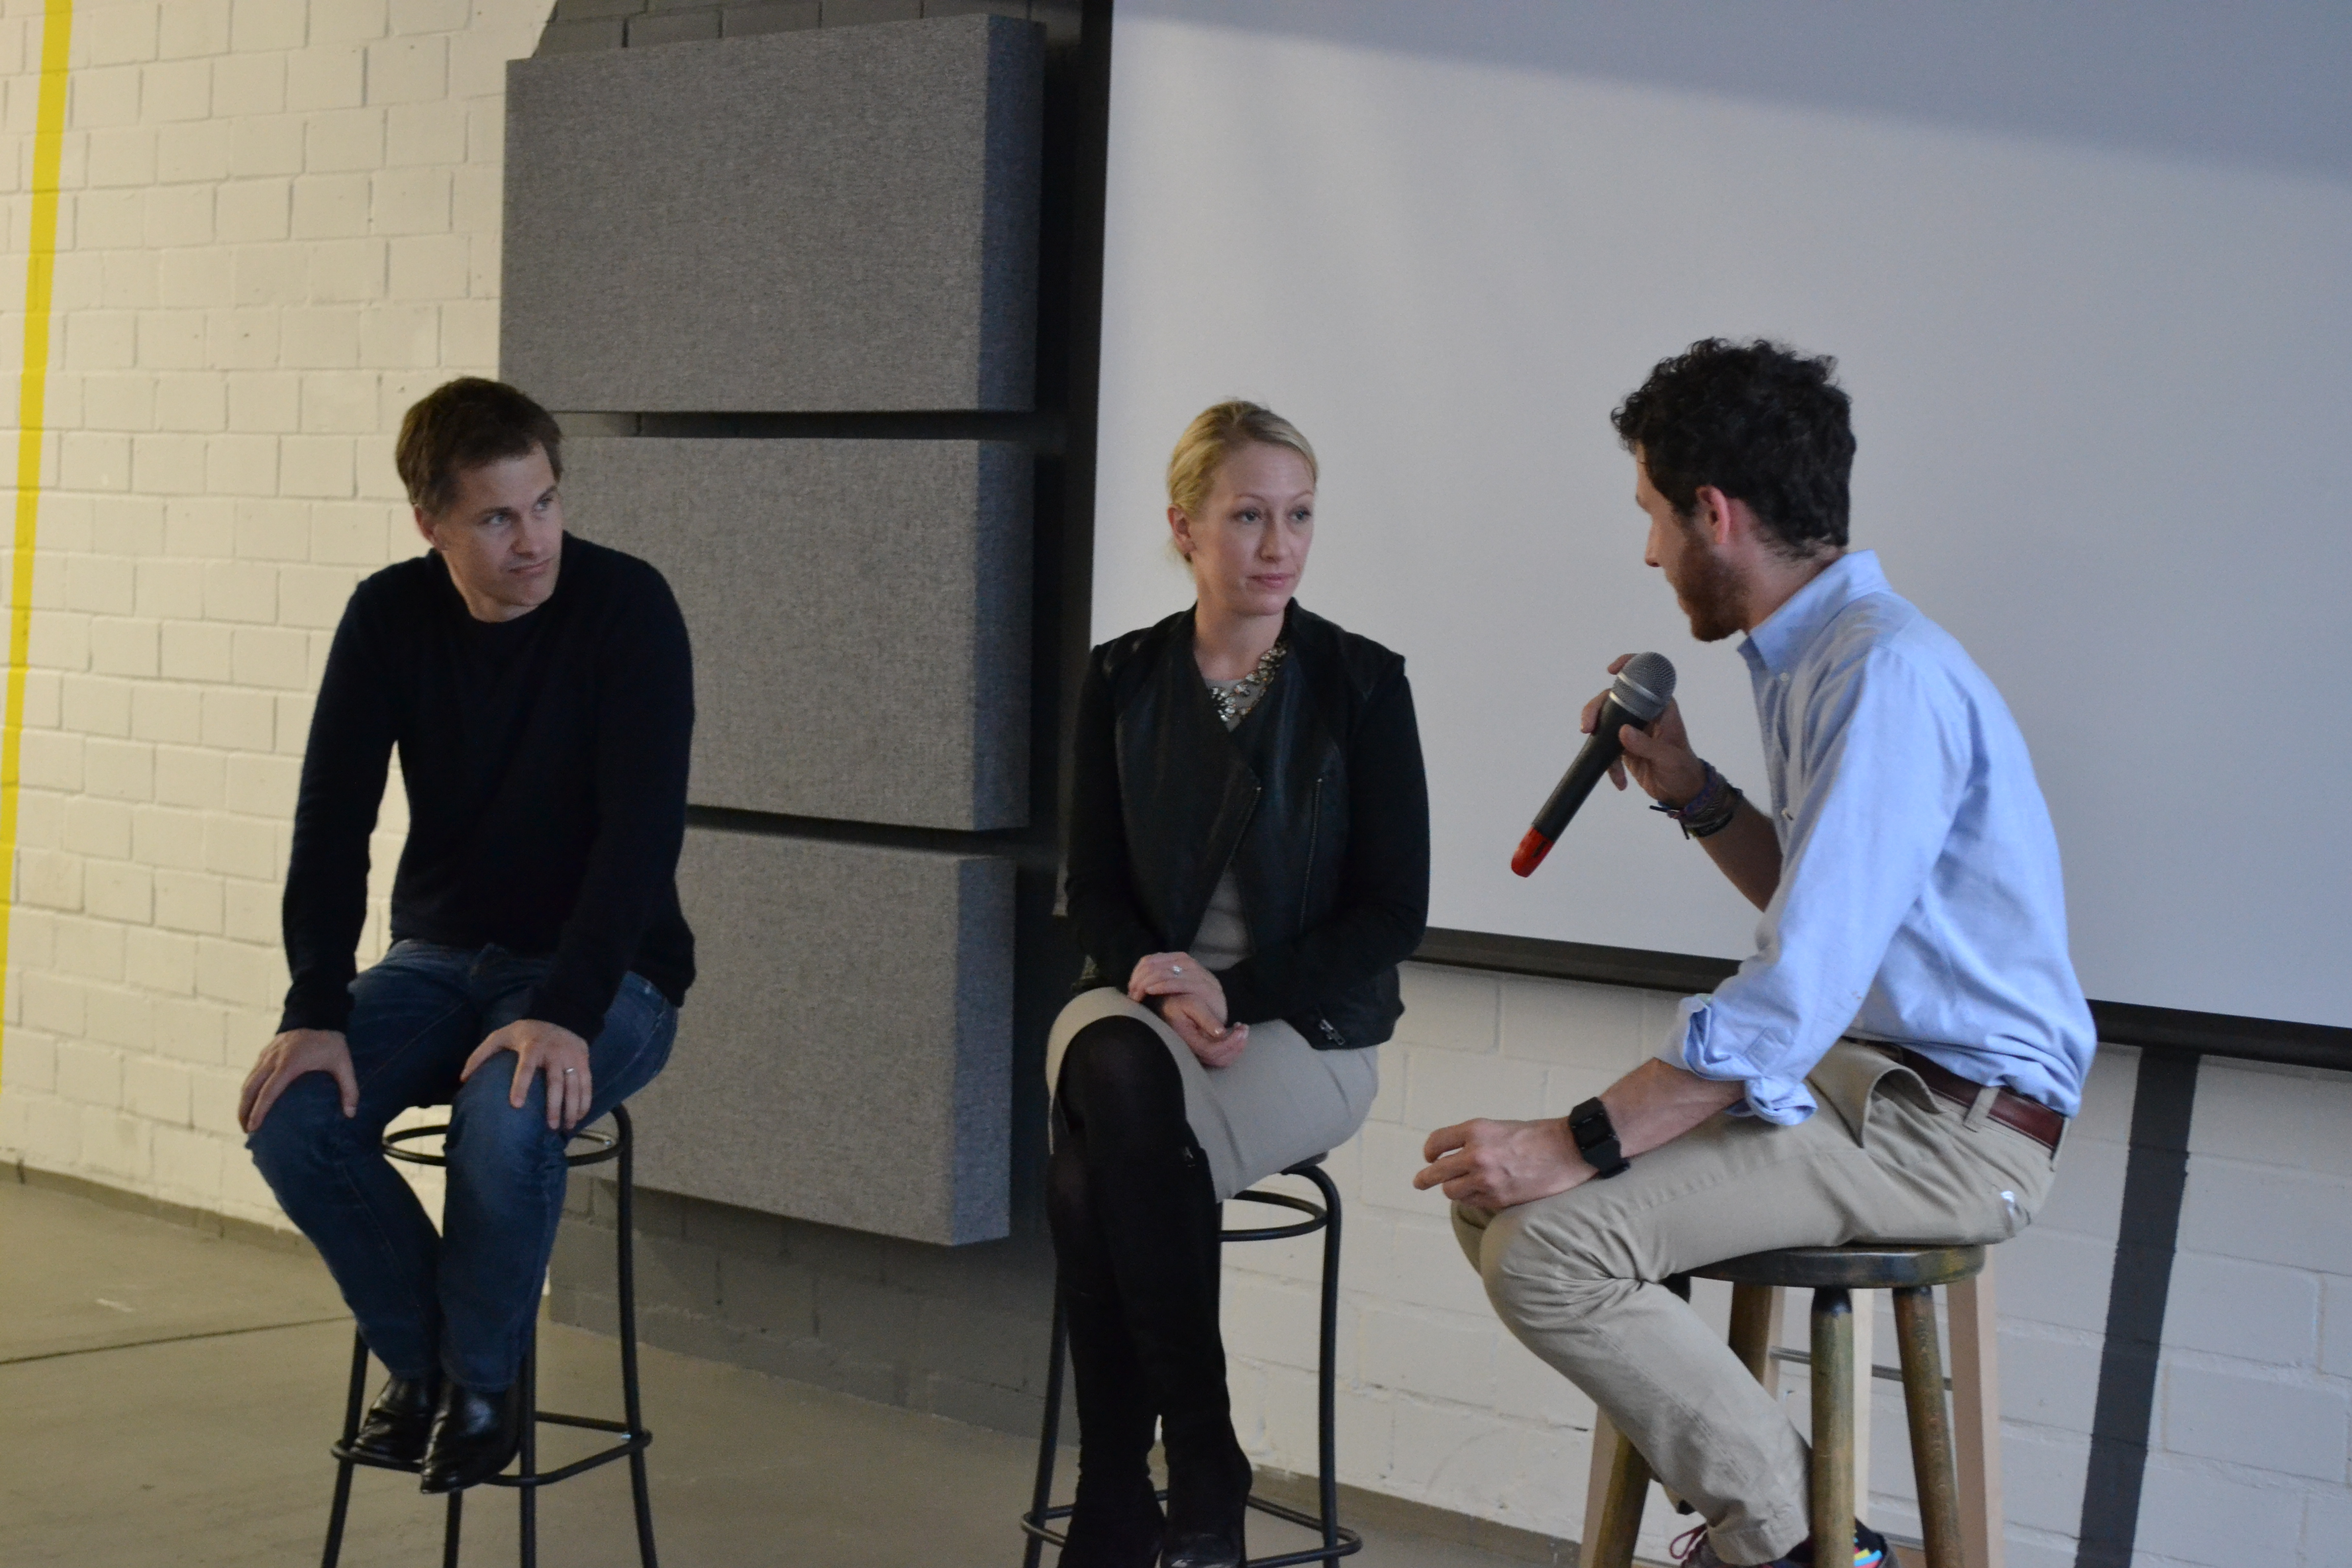 Matthew Brimer of General Assembly interviewing Eventbrite co-founders Kevin and Julia Hartz